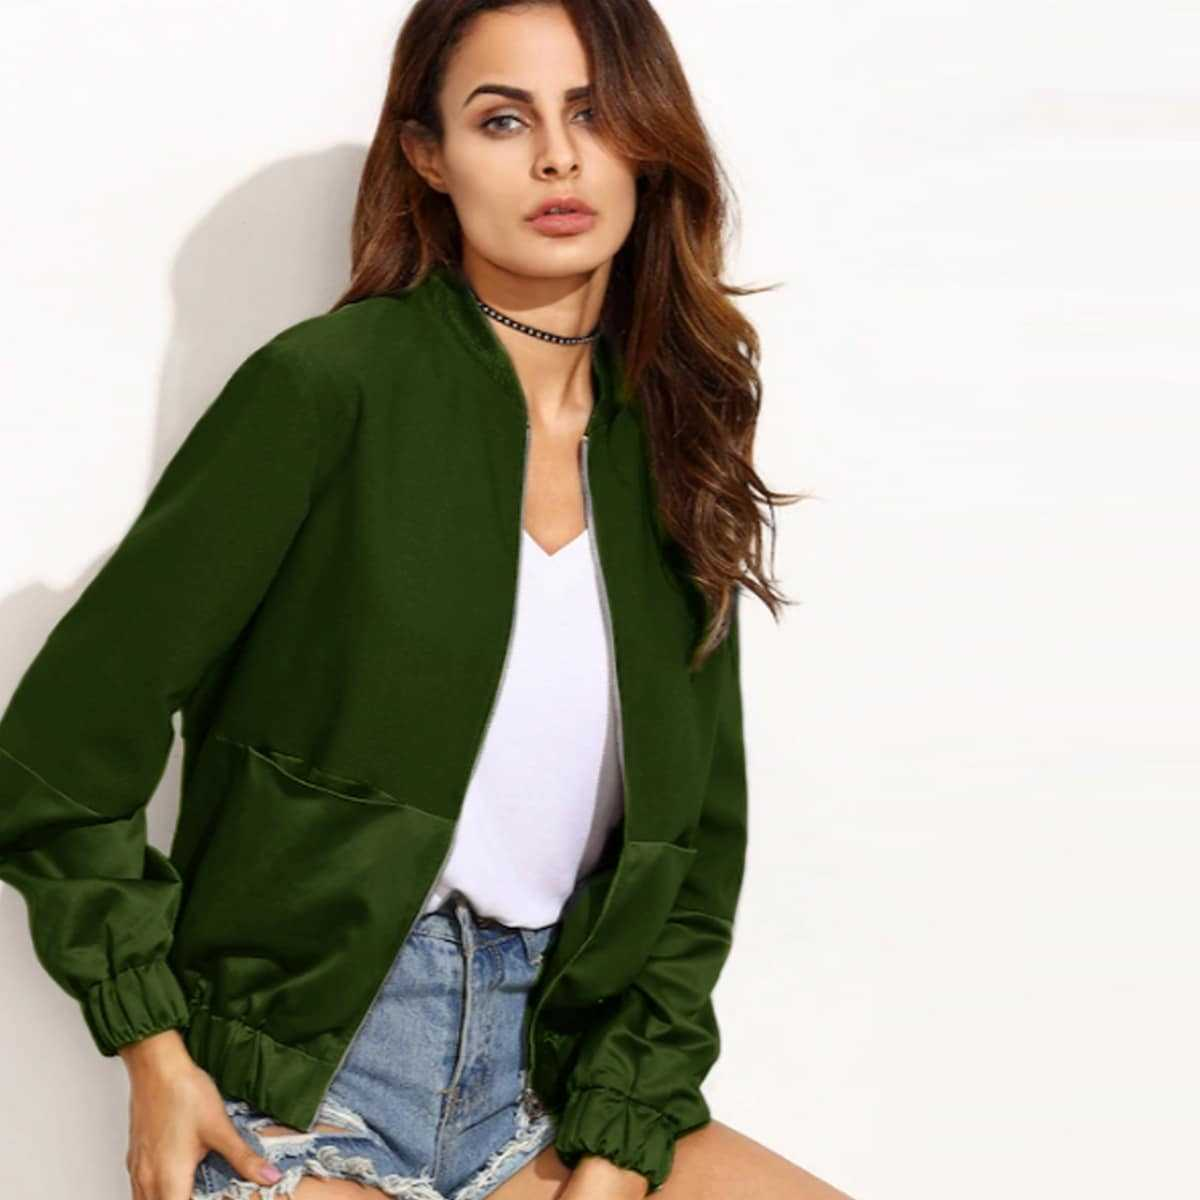 Mixed Media Zip Up Bomber Jacket in Green by ROMWE on GOOFASH